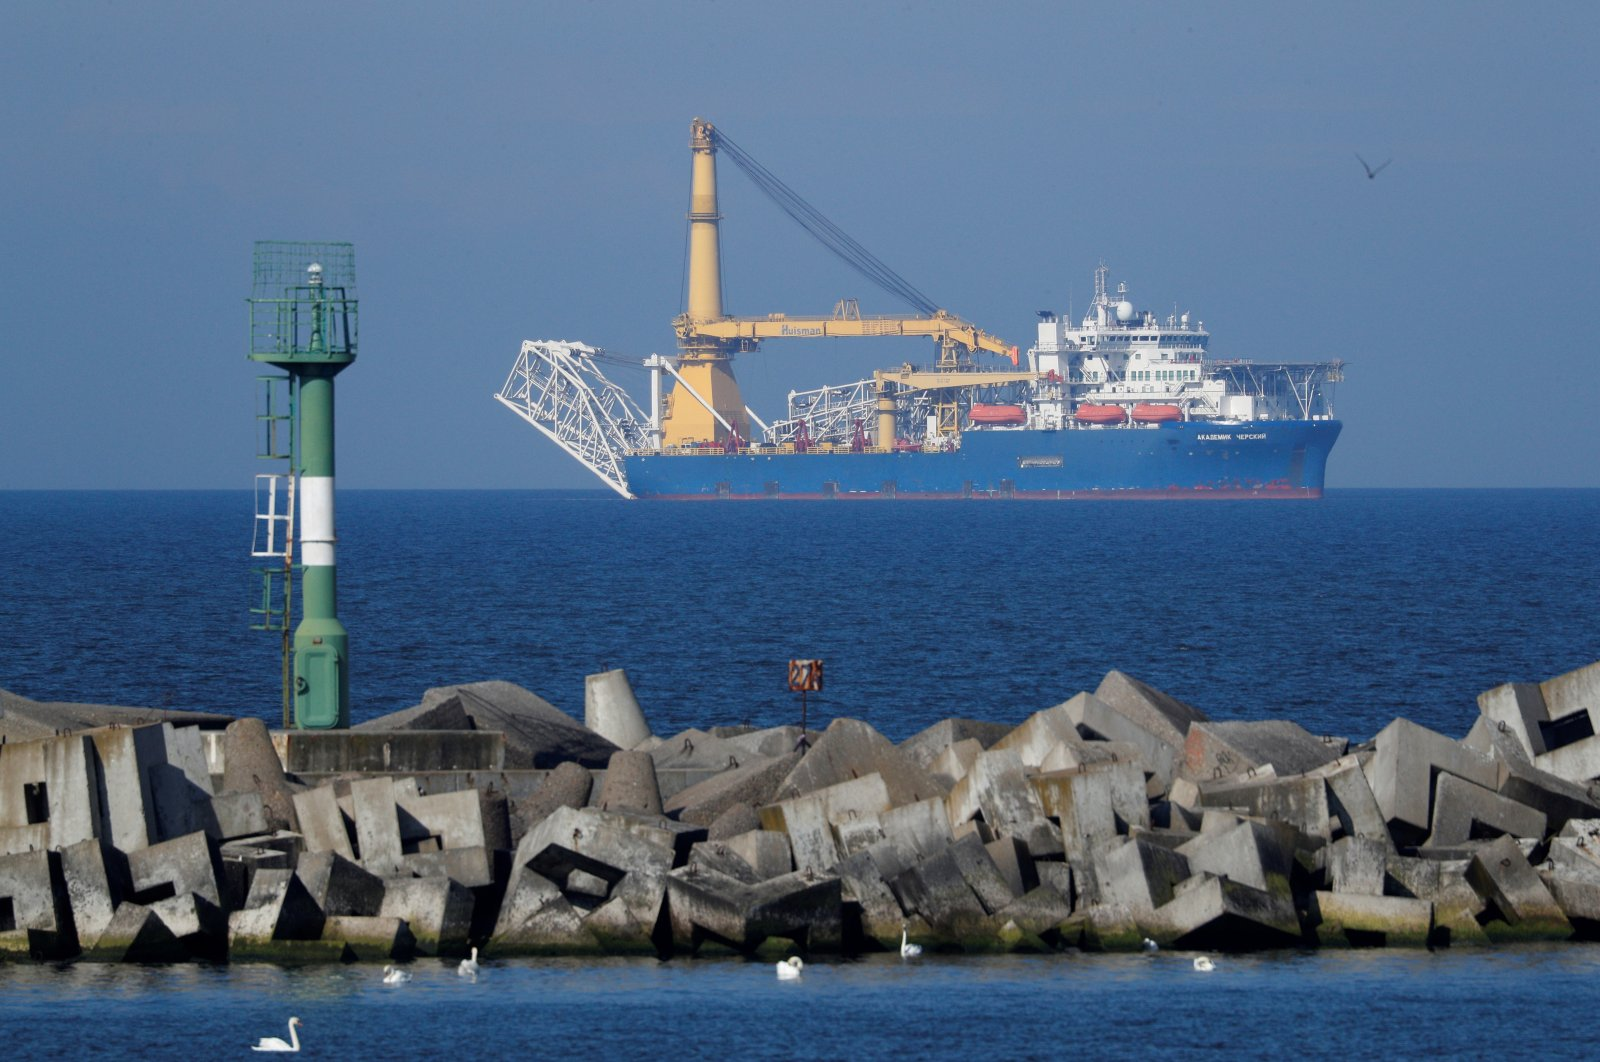 The pipe-laying vessel Akademik Cherskiy owned by Gazprom, which Russia may use to complete construction of the Nord Stream 2 gas pipeline, in a bay near the Baltic Sea port of Baltiysk, Kaliningrad region, Russia, May 3, 2020. (Reuters Photo)